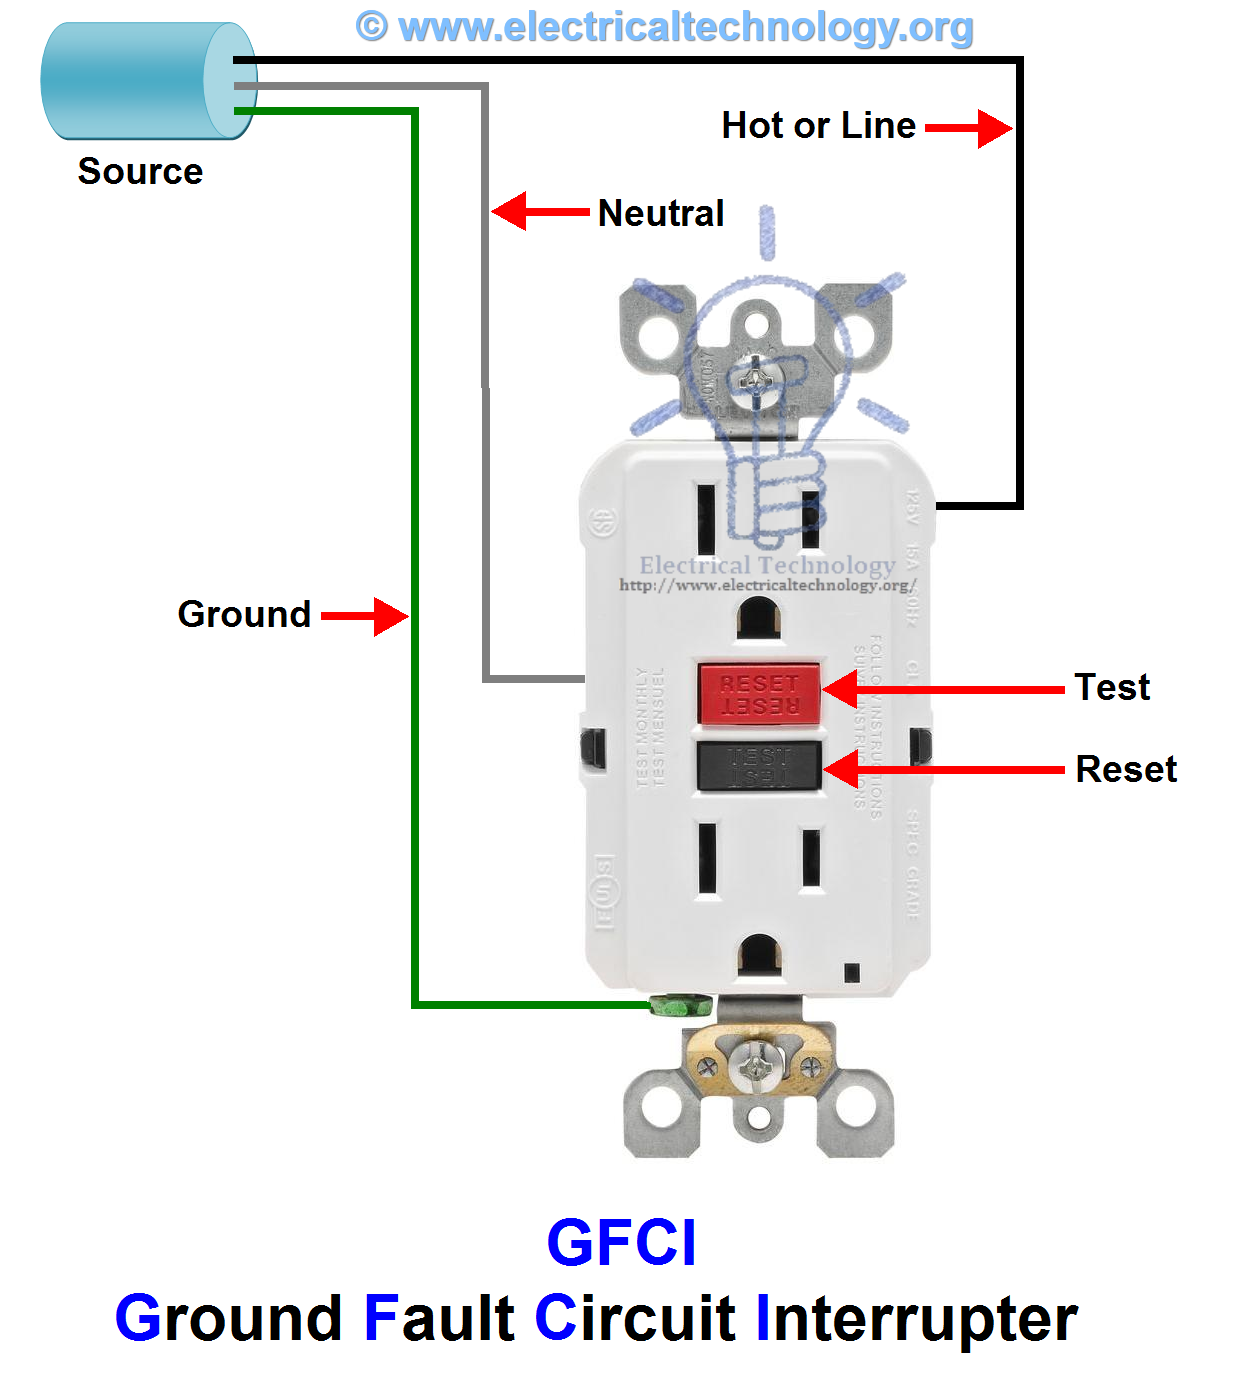 gfci ground fault circuit interrupter types working ground fault interrupter circuit diagram can39t reset a gfci outlet [ 1236 x 1380 Pixel ]